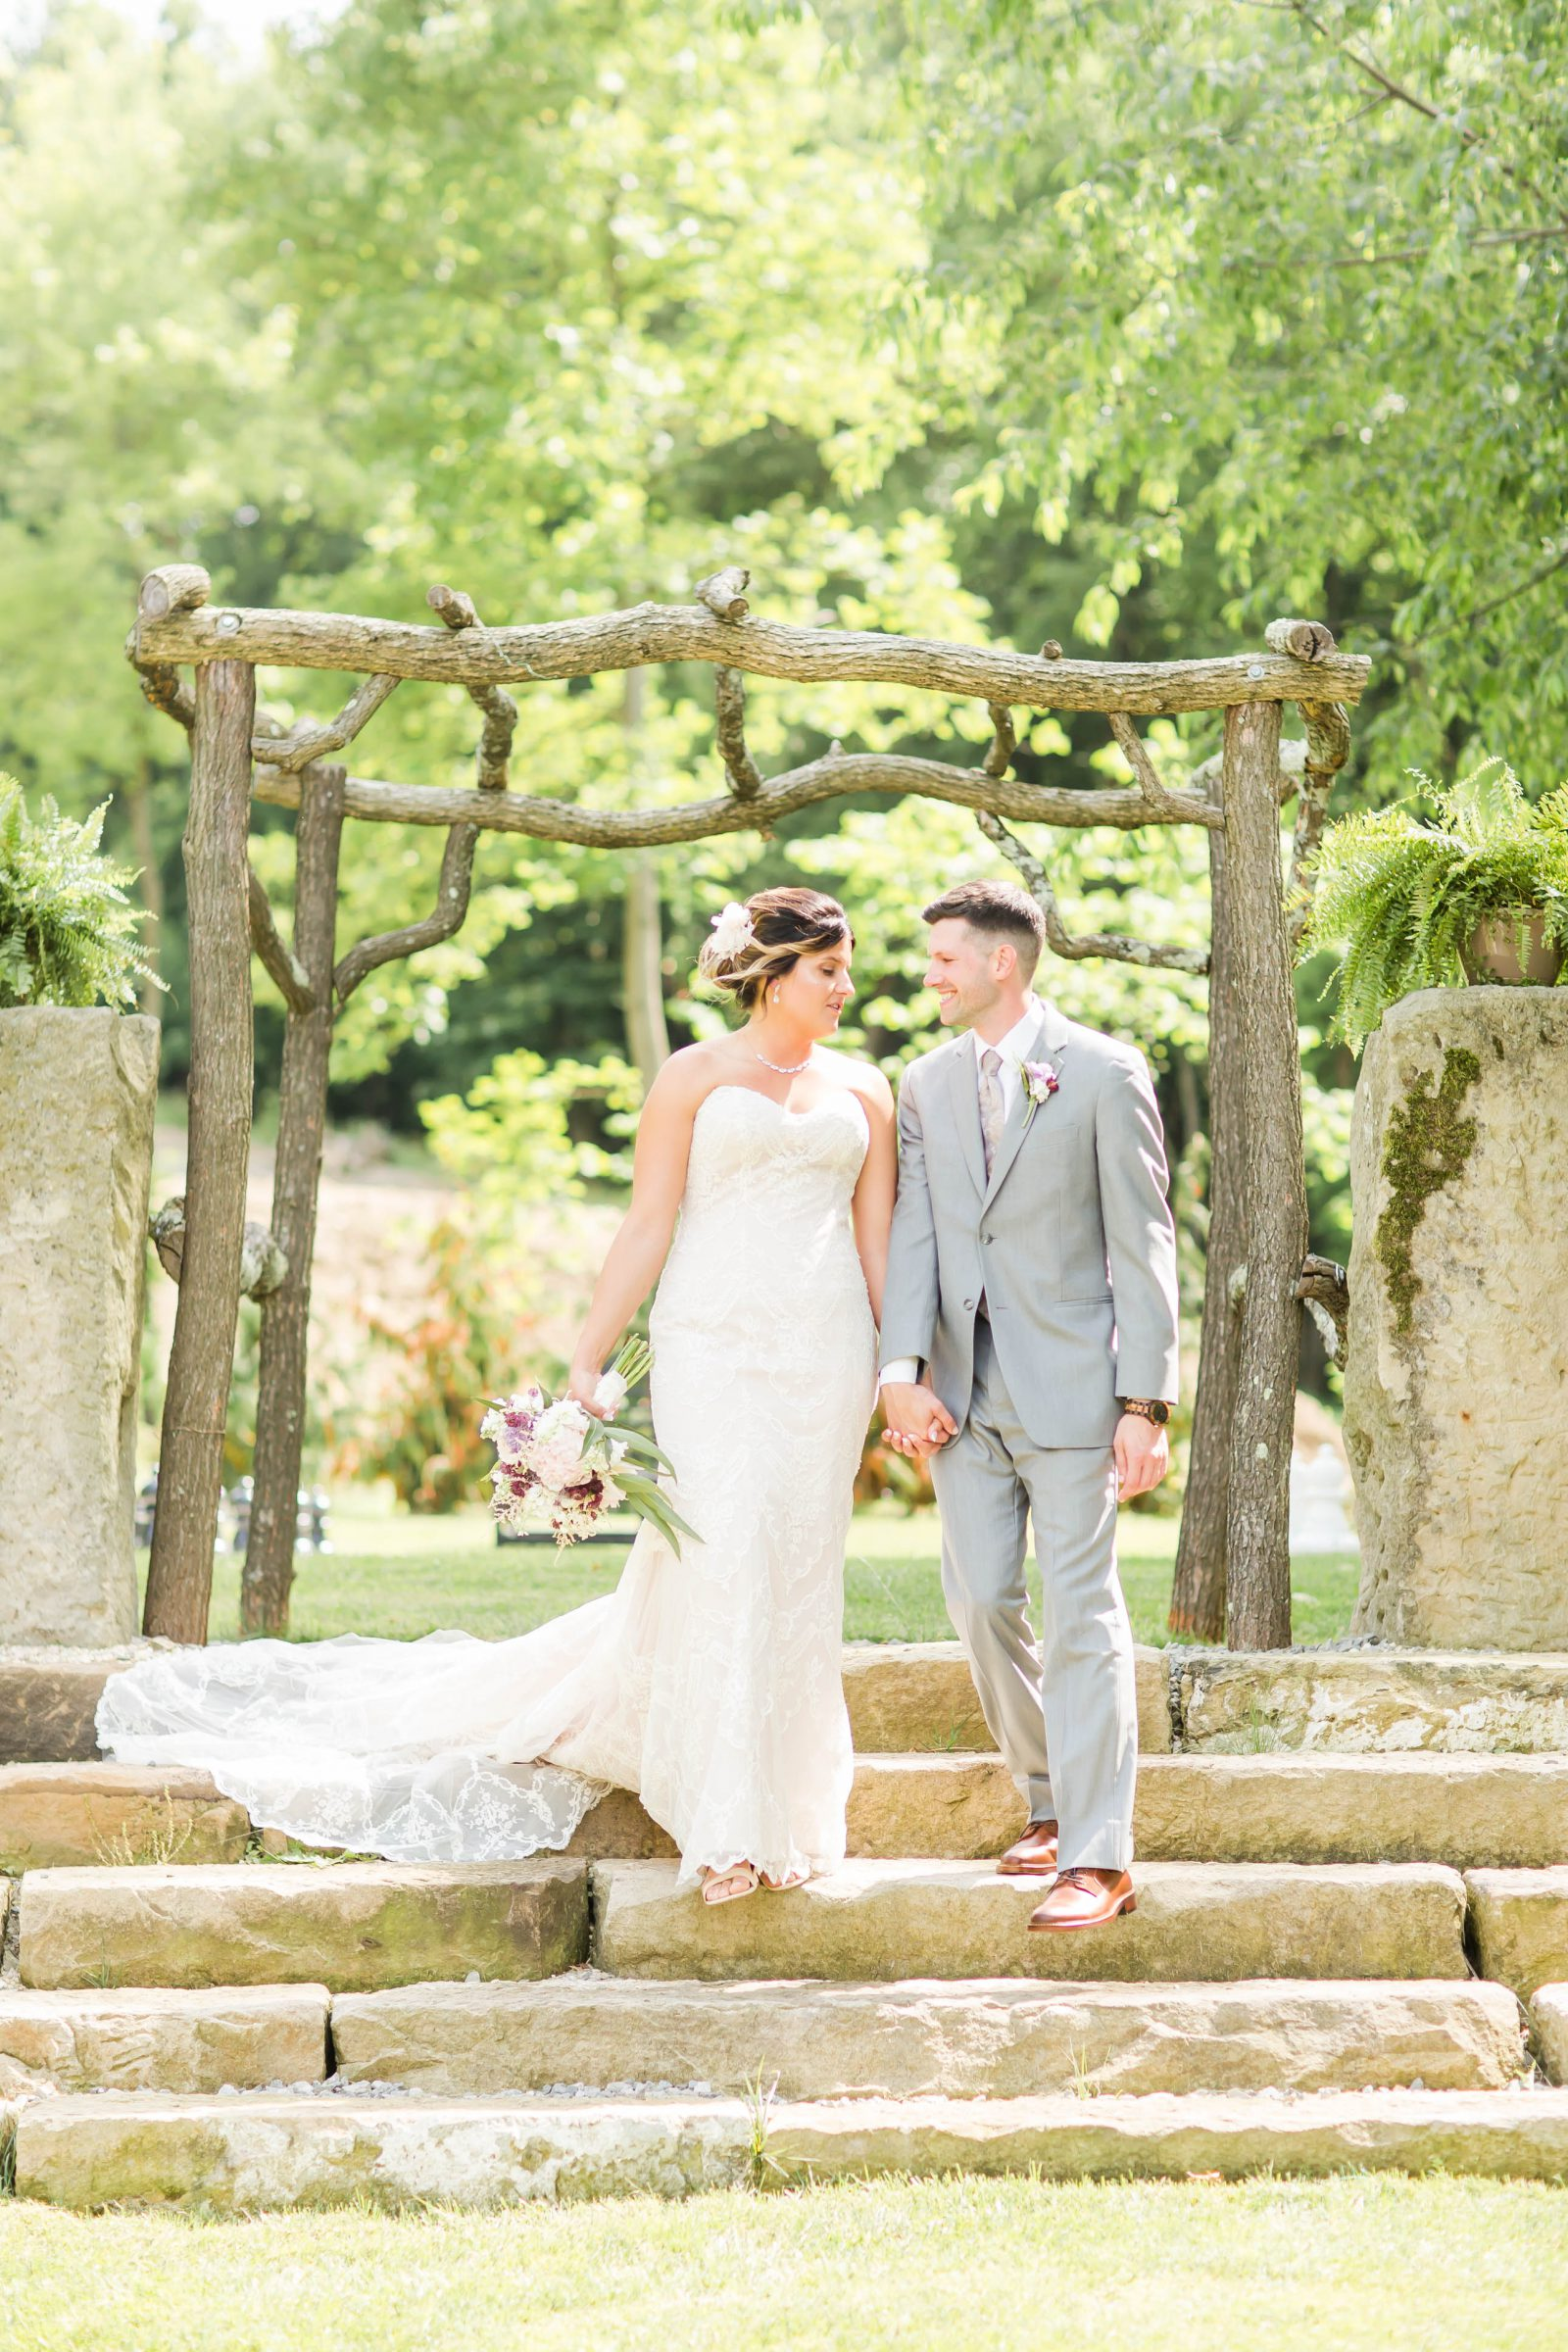 rivercrest-farm-summer-wedding-loren-jackson-photography-44